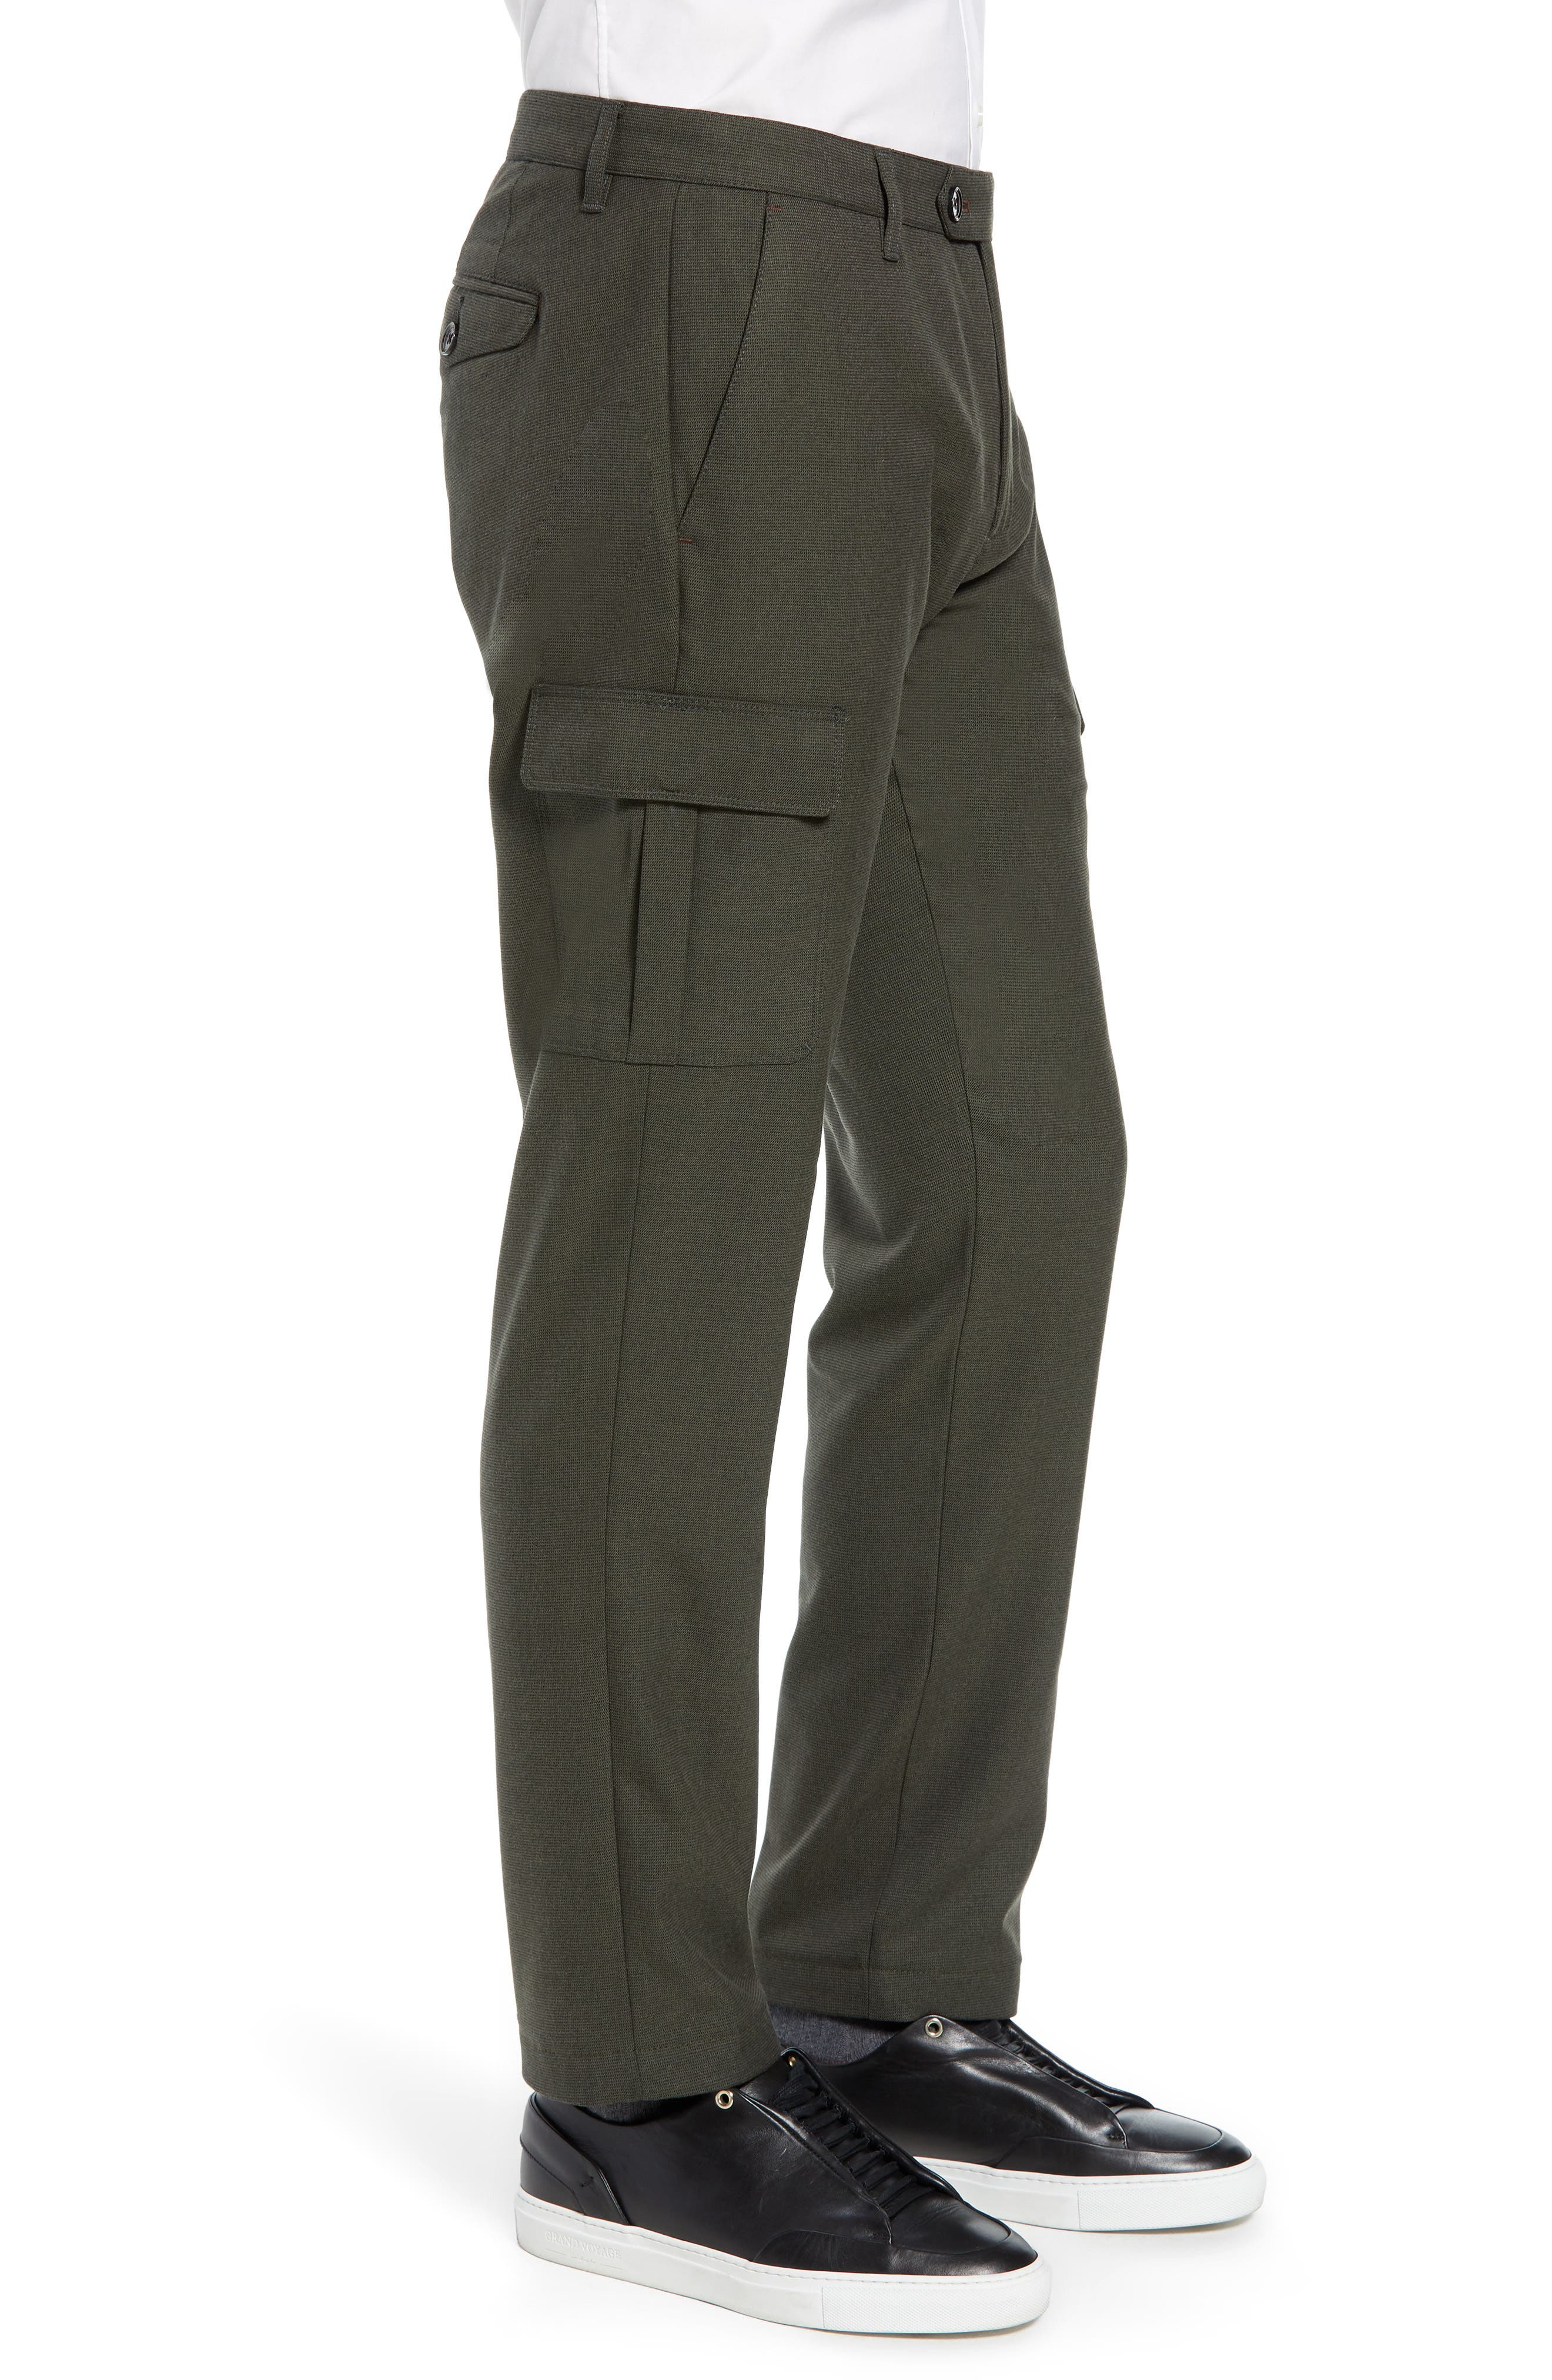 Zakery Slim Fit Utility Cargo Trousers,                             Alternate thumbnail 3, color,                             KHAKI